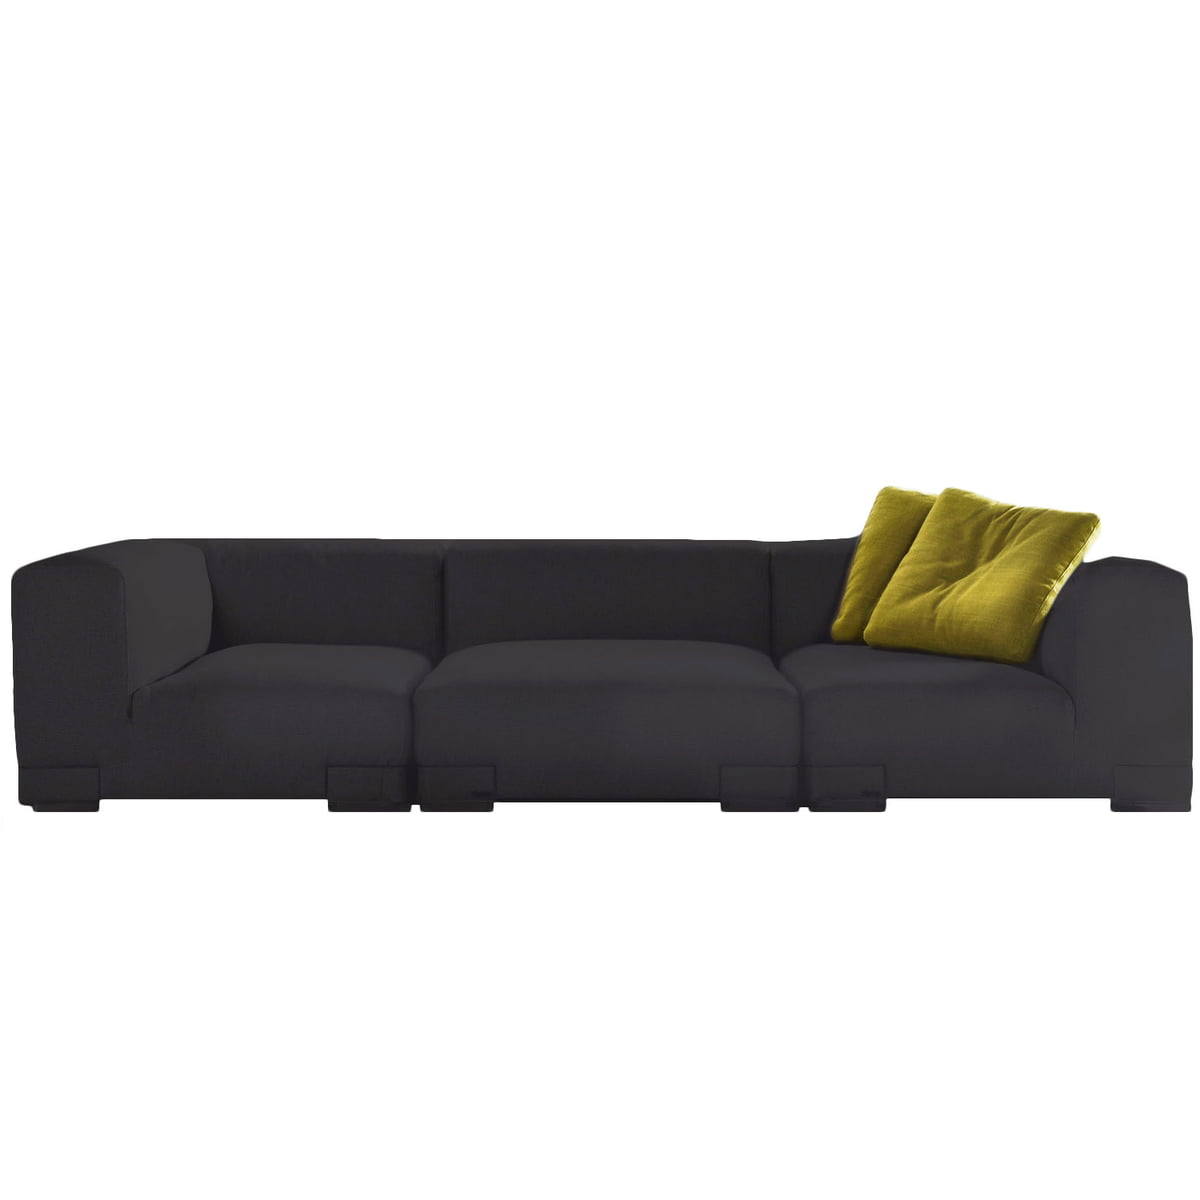 the plastics sofa by kartell in the shop rh connox com